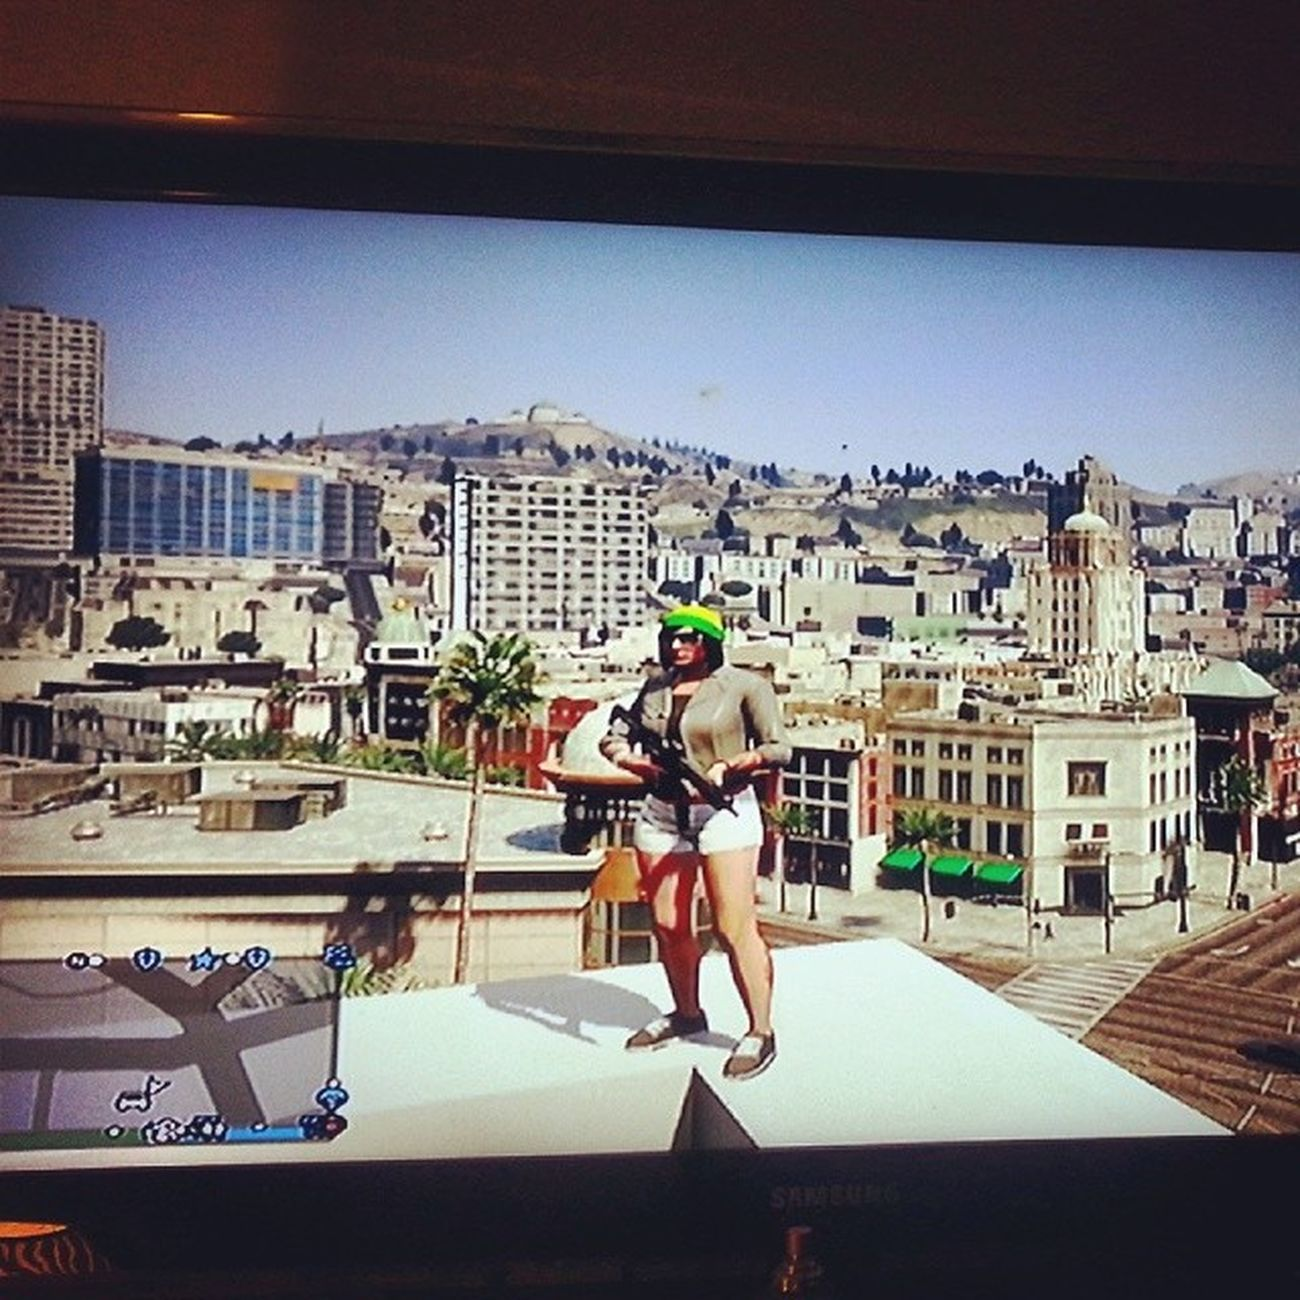 Gta5 BillyBadass ♥